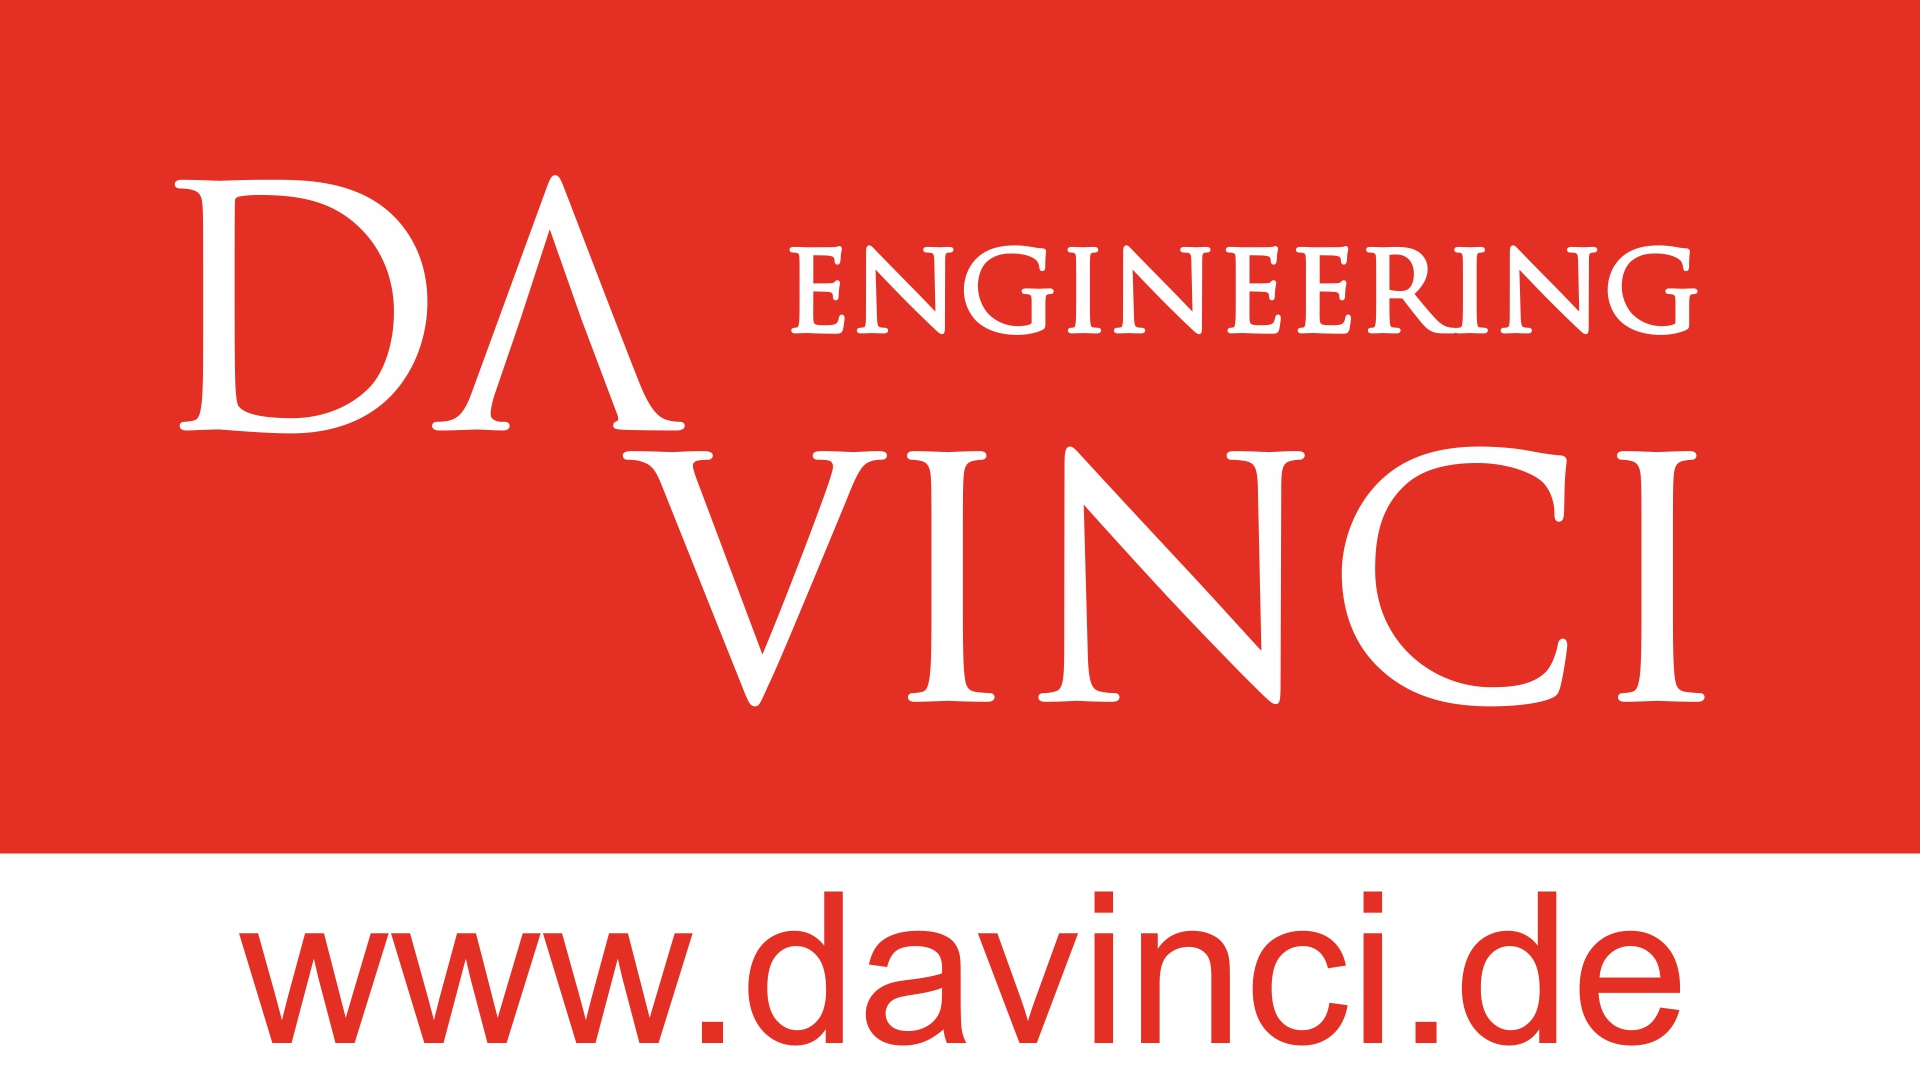 Davinci